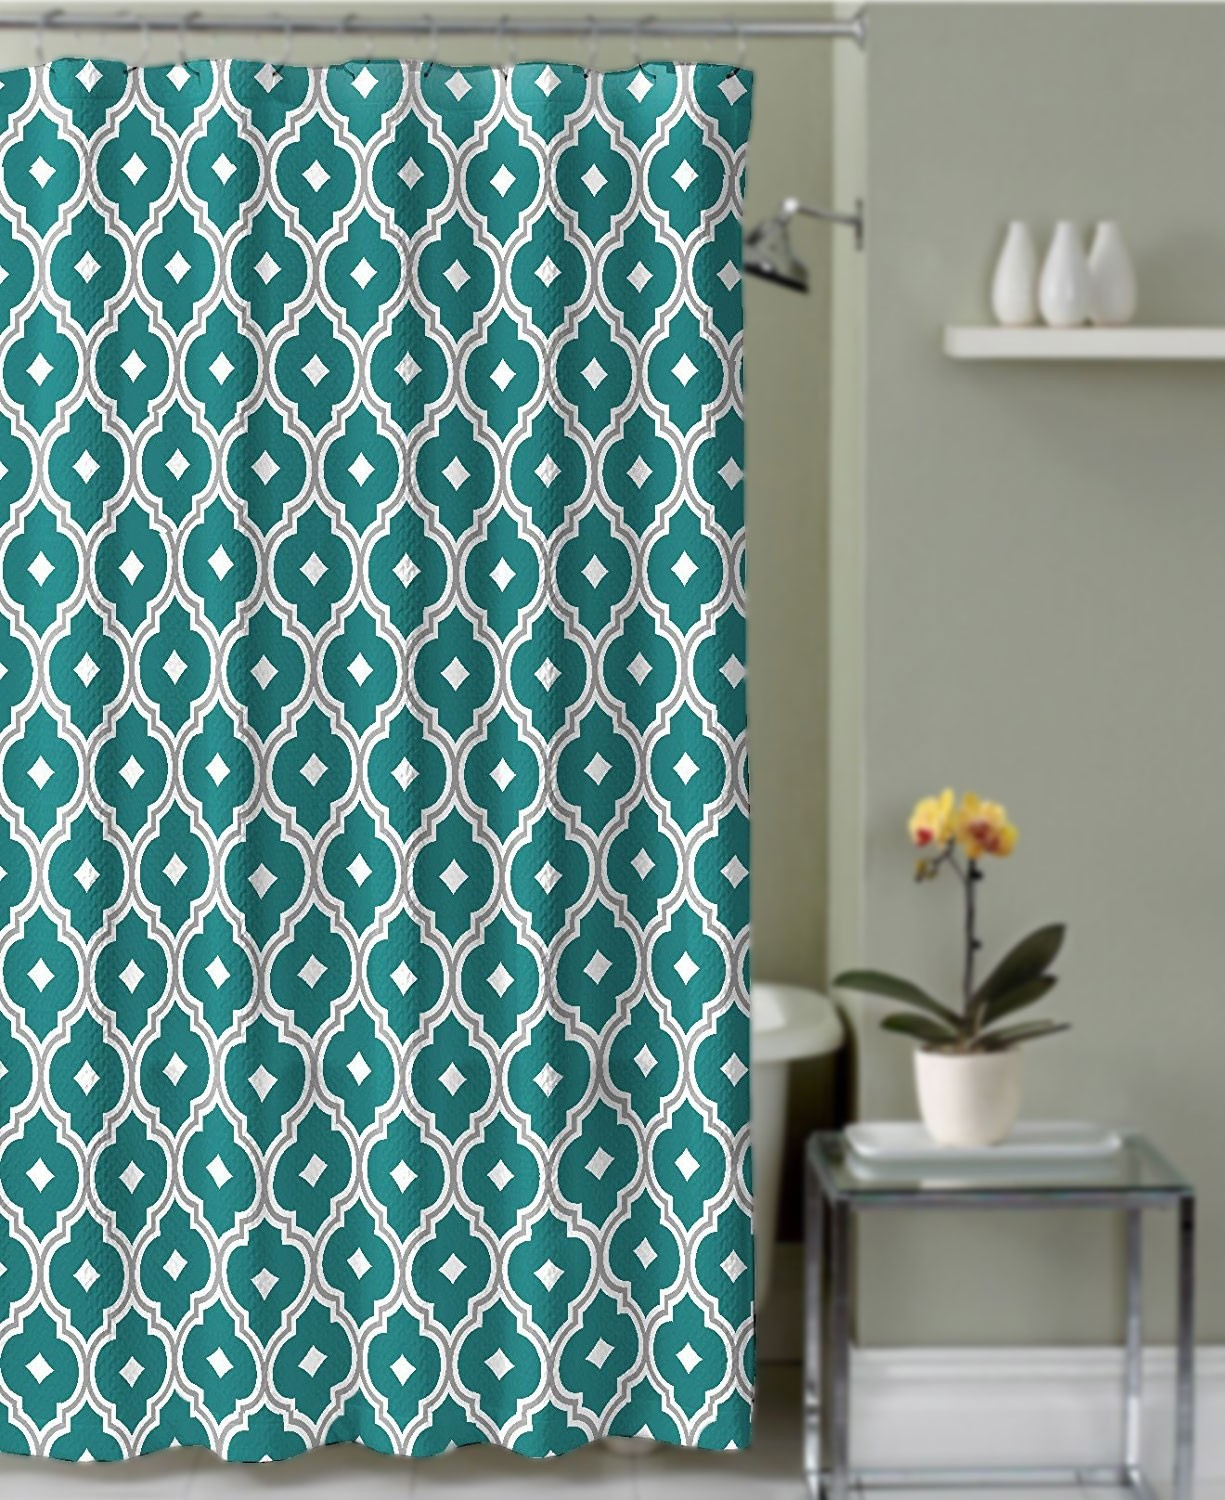 Crest home renard fabric shower curtain teal and grey for Crest home designs curtains